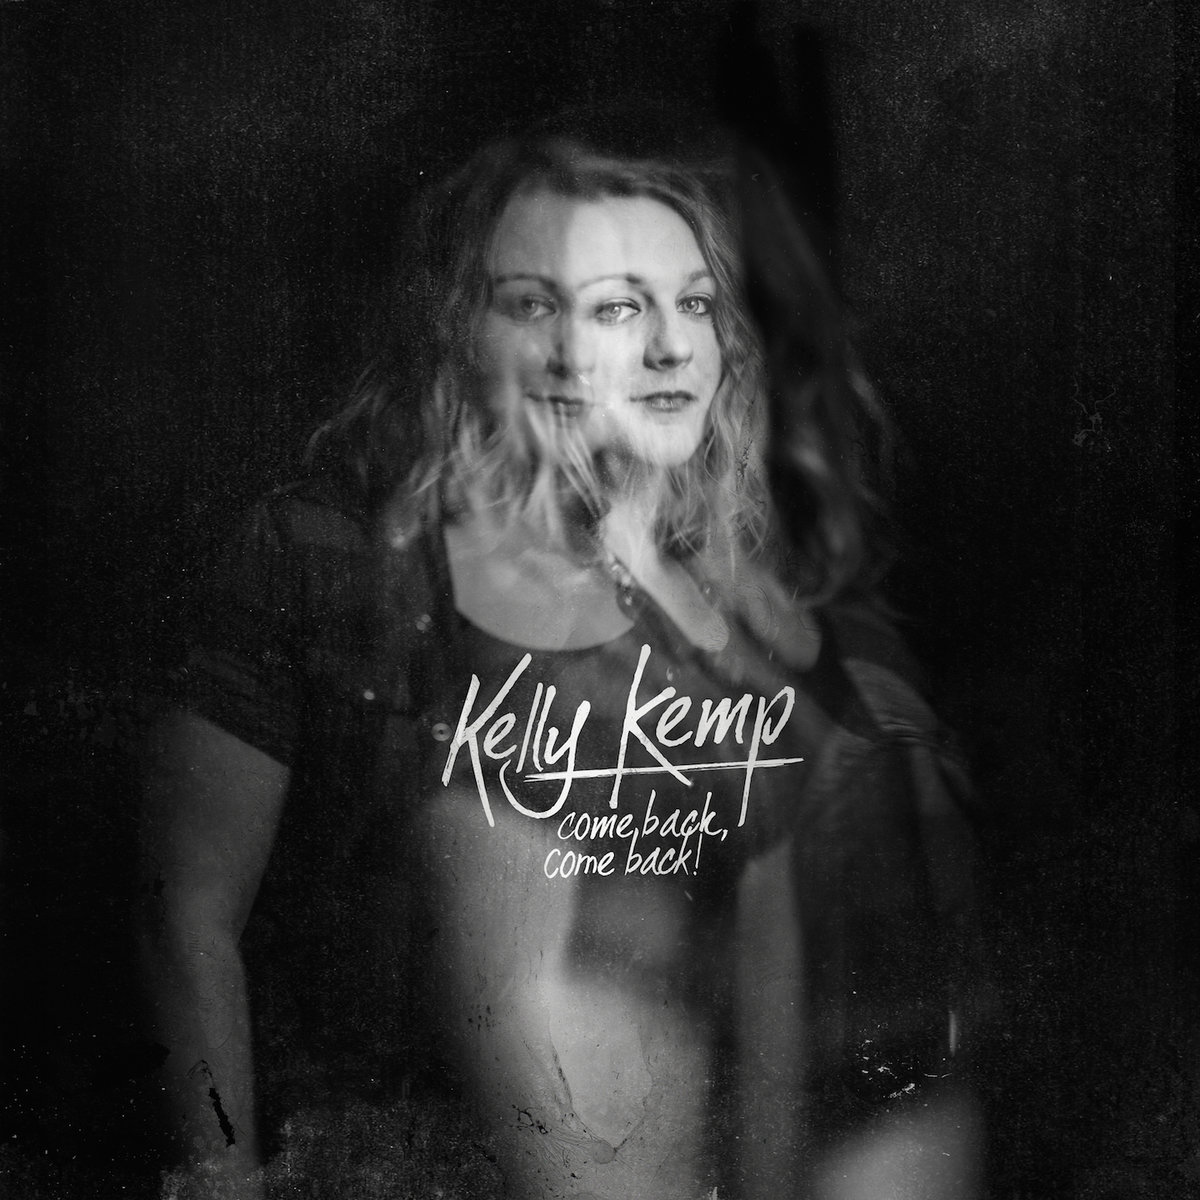 Kelly Kemp - Come Back, Come Back! LP / CD